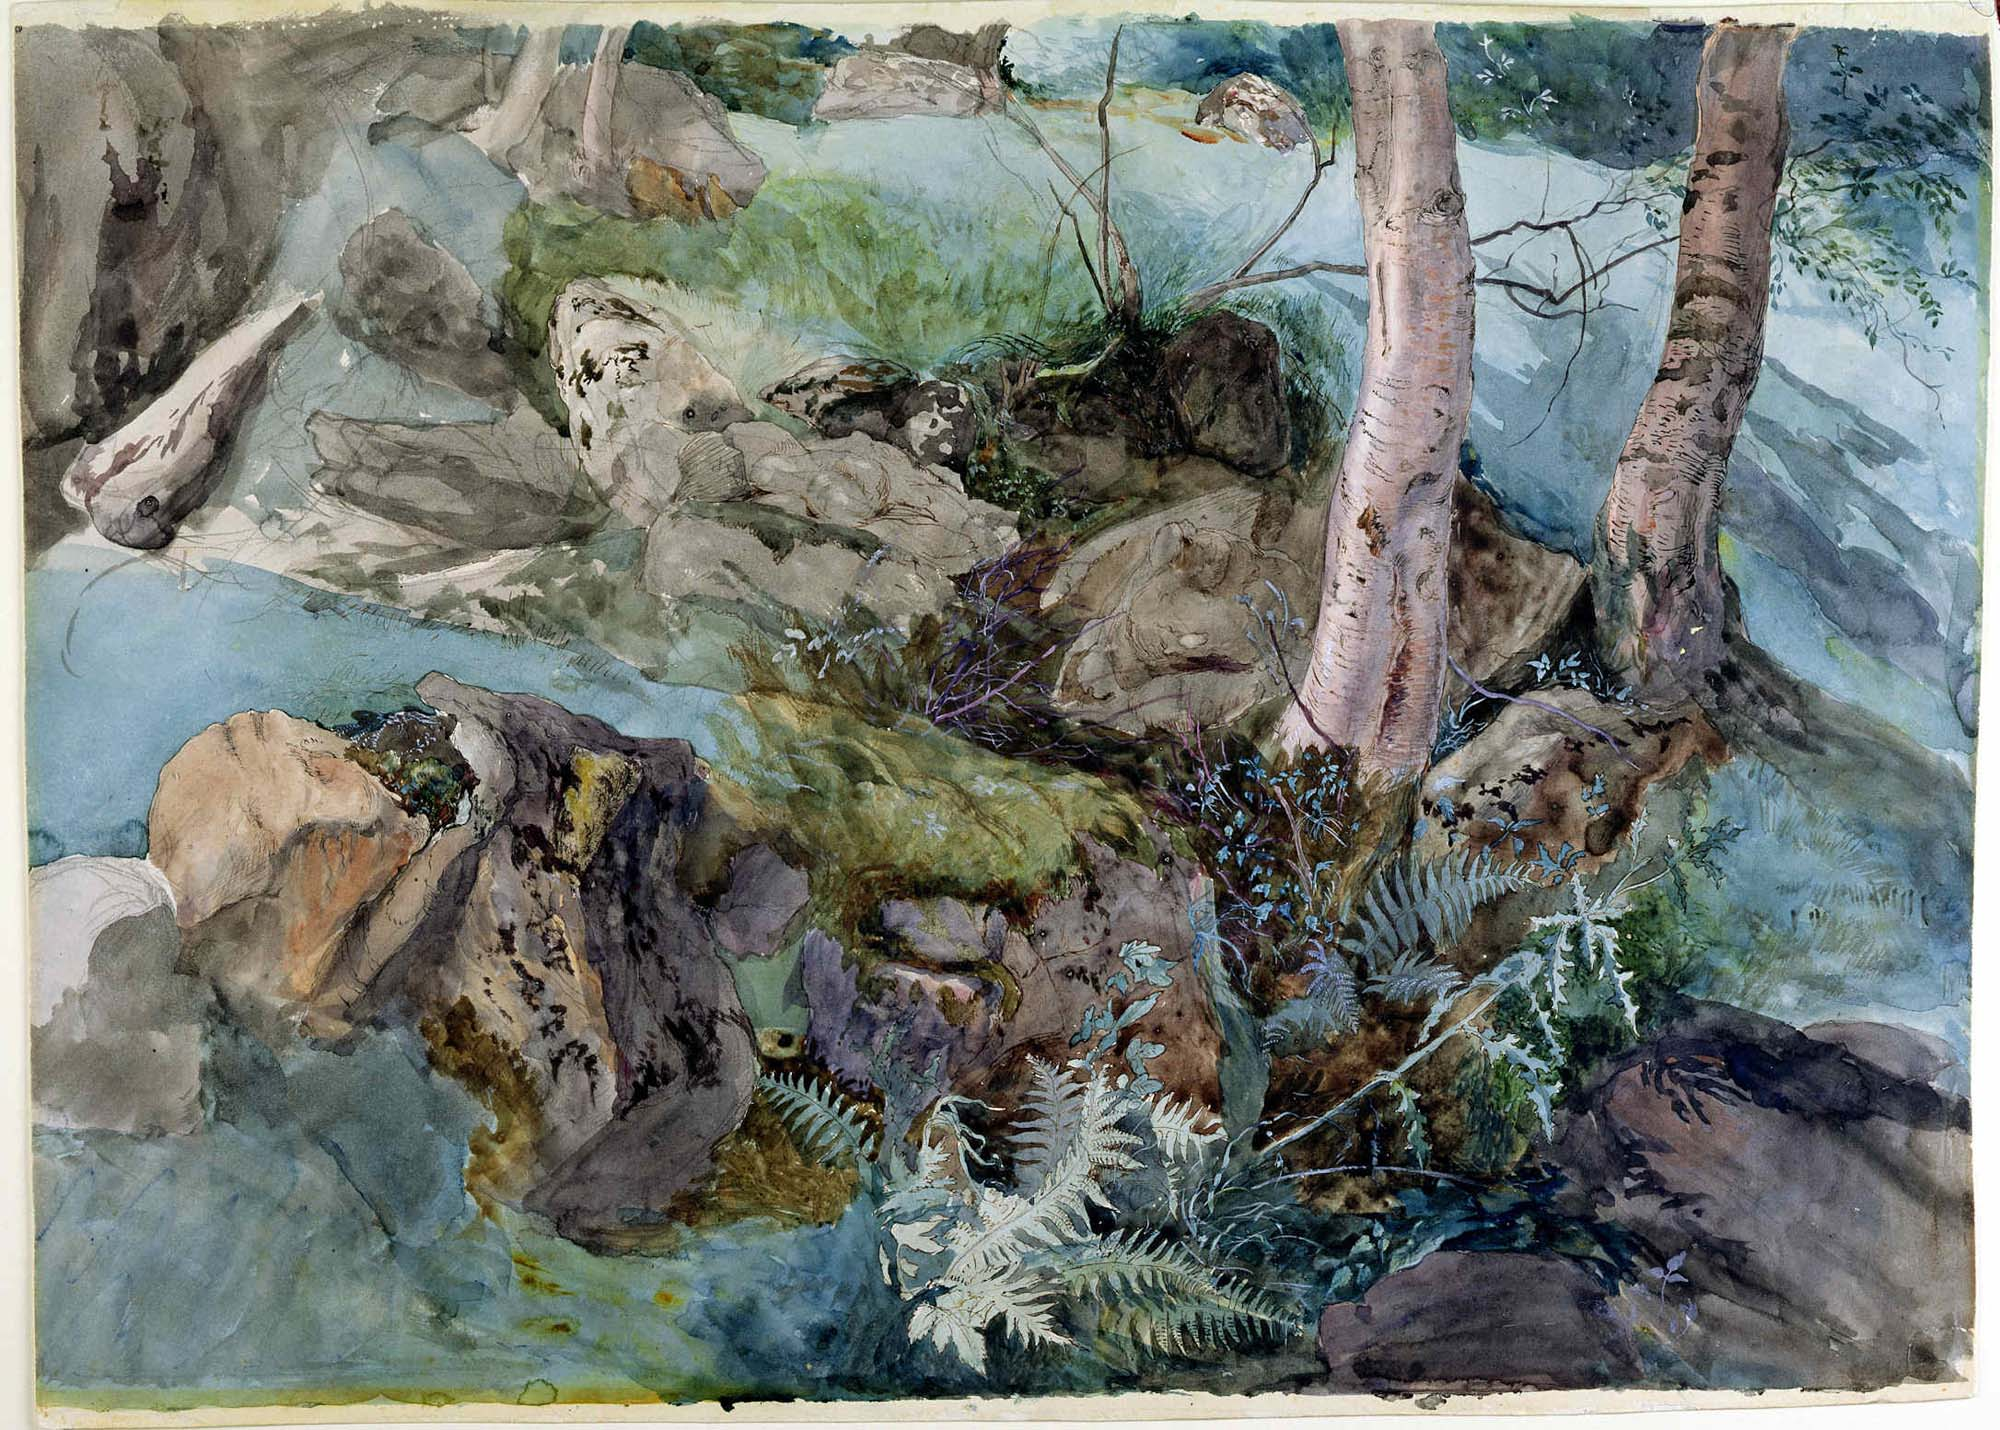 a detailed painting of rocks and ferns in a woodland